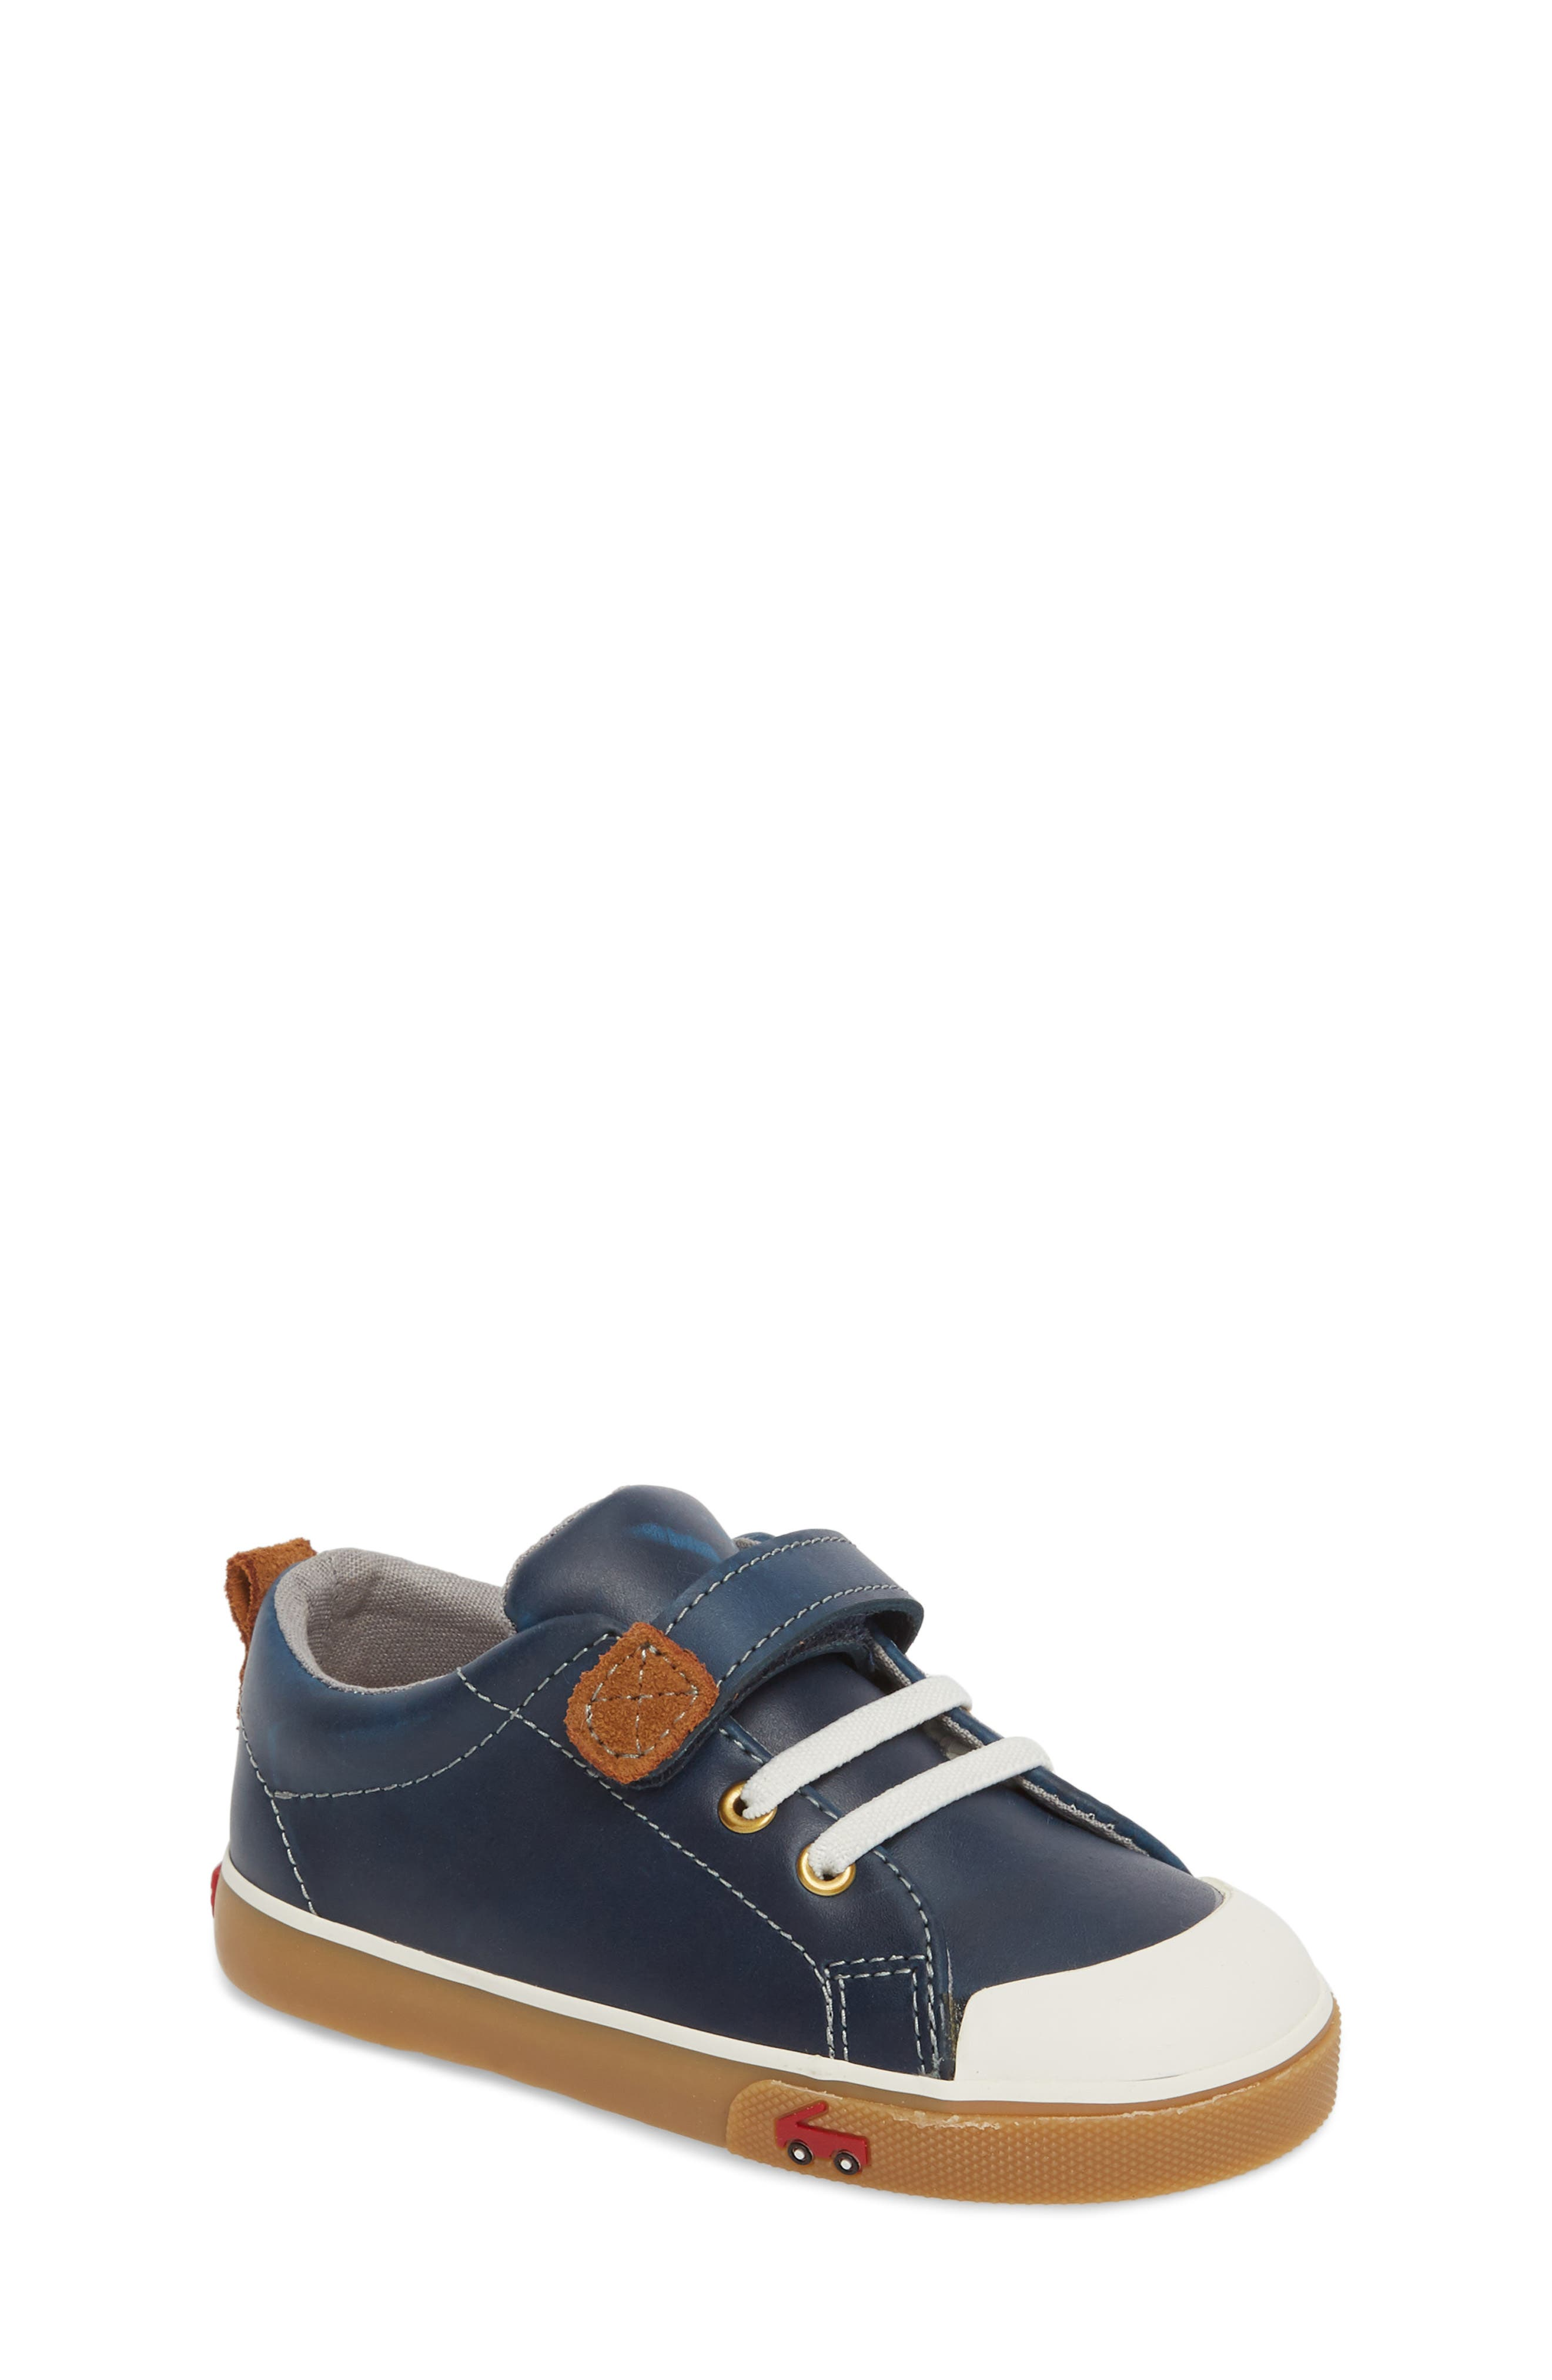 Stevie II Sneaker,                         Main,                         color, NAVY LEATHER